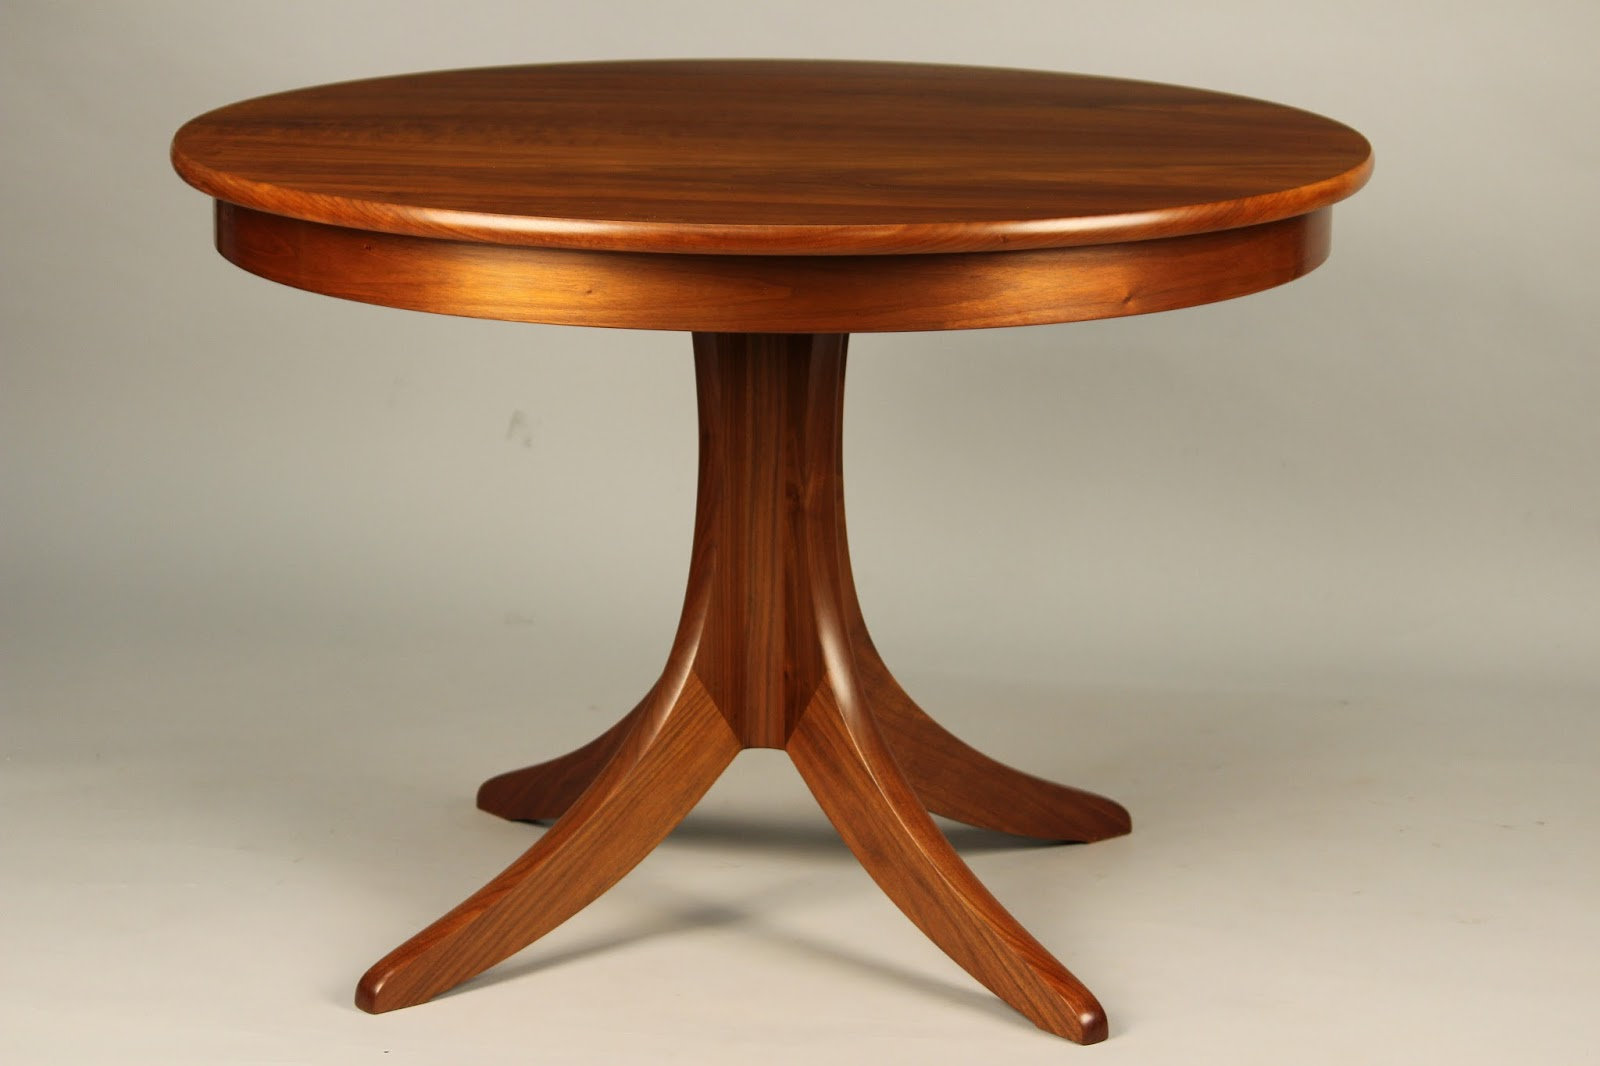 Finest pedestal table best hardwood walnut